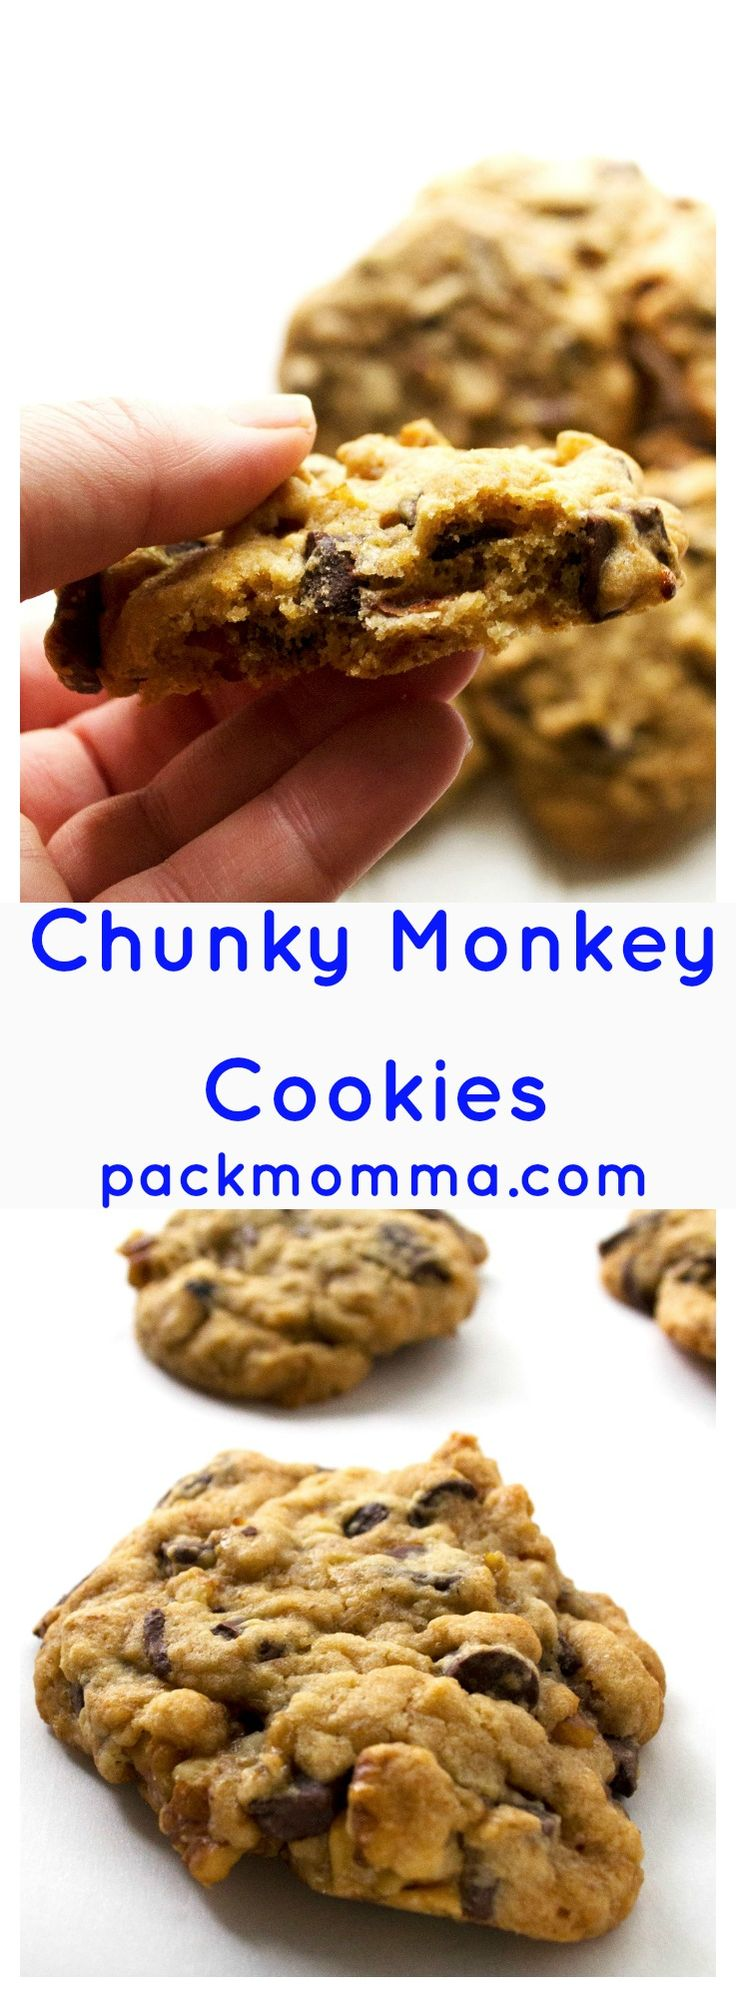 Chunky Monkey Cookies | Chunky Monkey Cookies are ice cream inspired and cookie perfected. Soft baked banana cookies with dark chocolate chunks and tons of walnuts.. Perfection! | Pack Momma